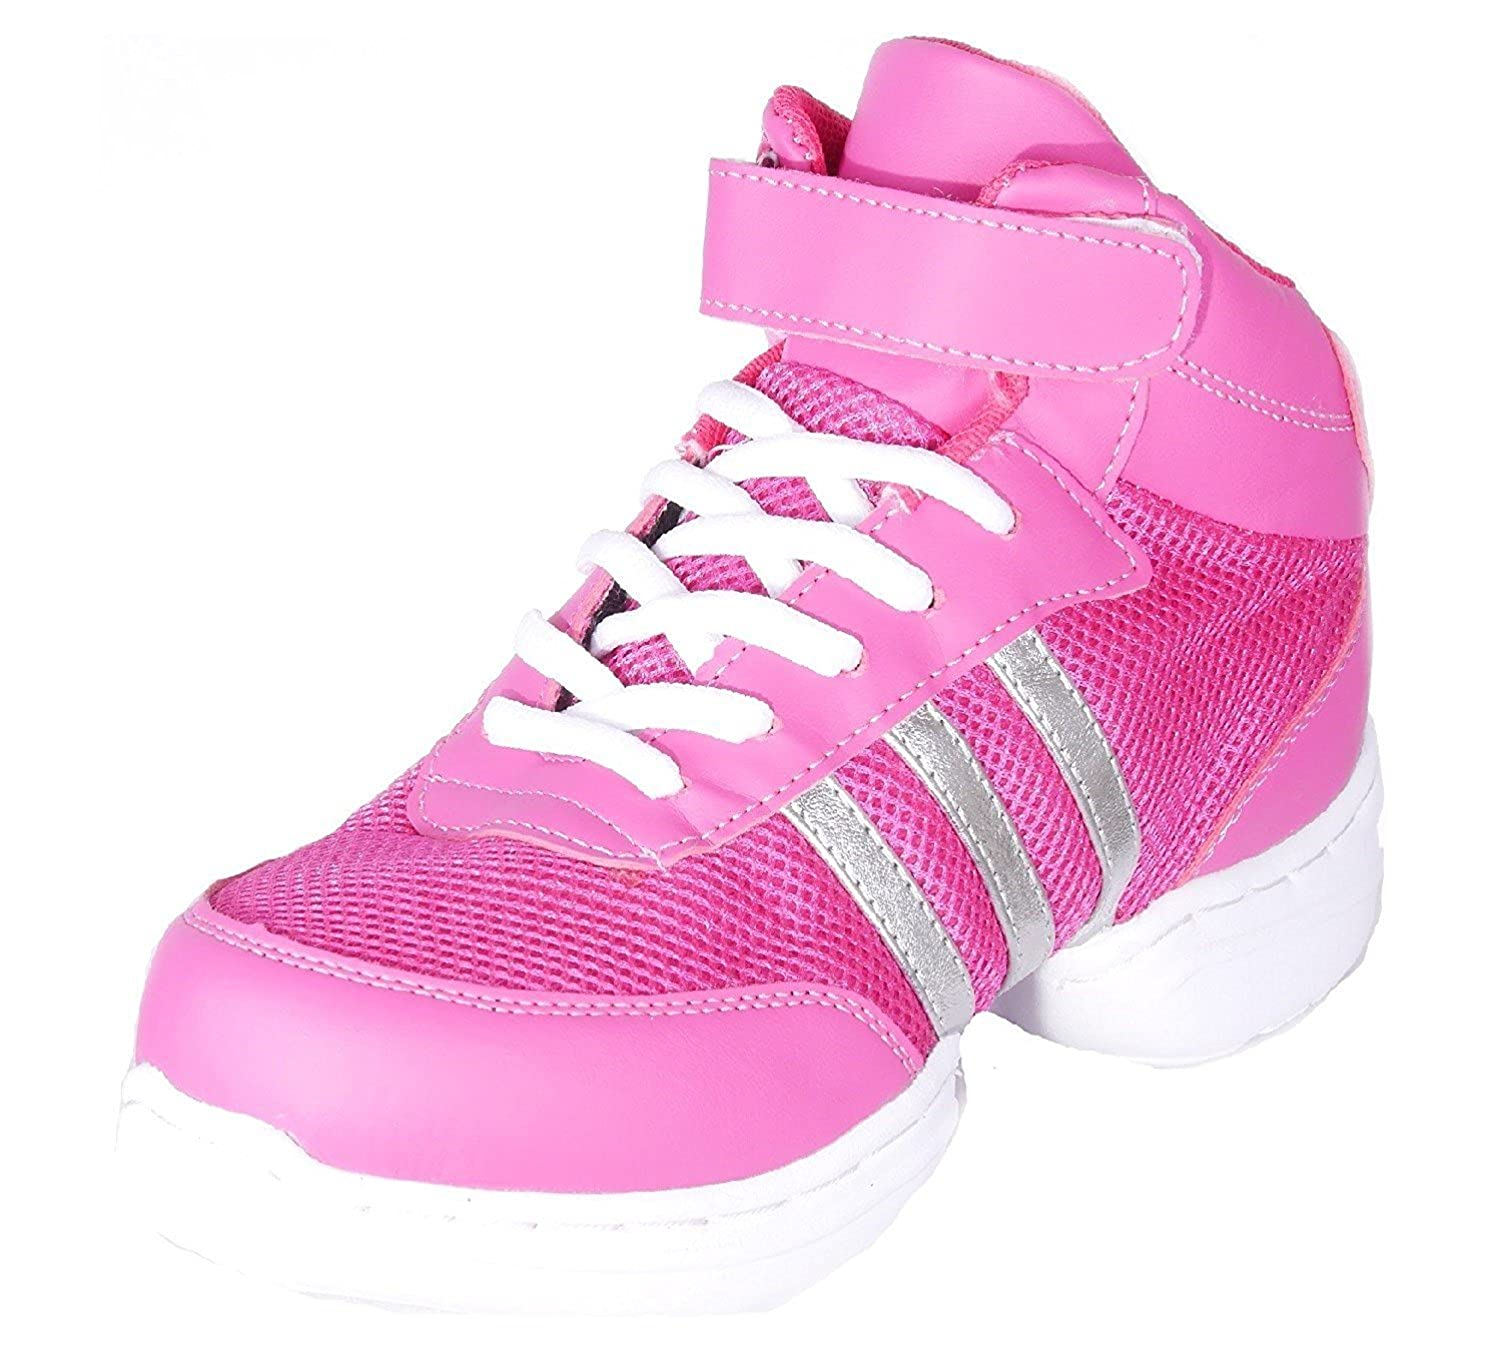 Nenes Collection Womens Dance Fitness Shoes High Top Sneakers